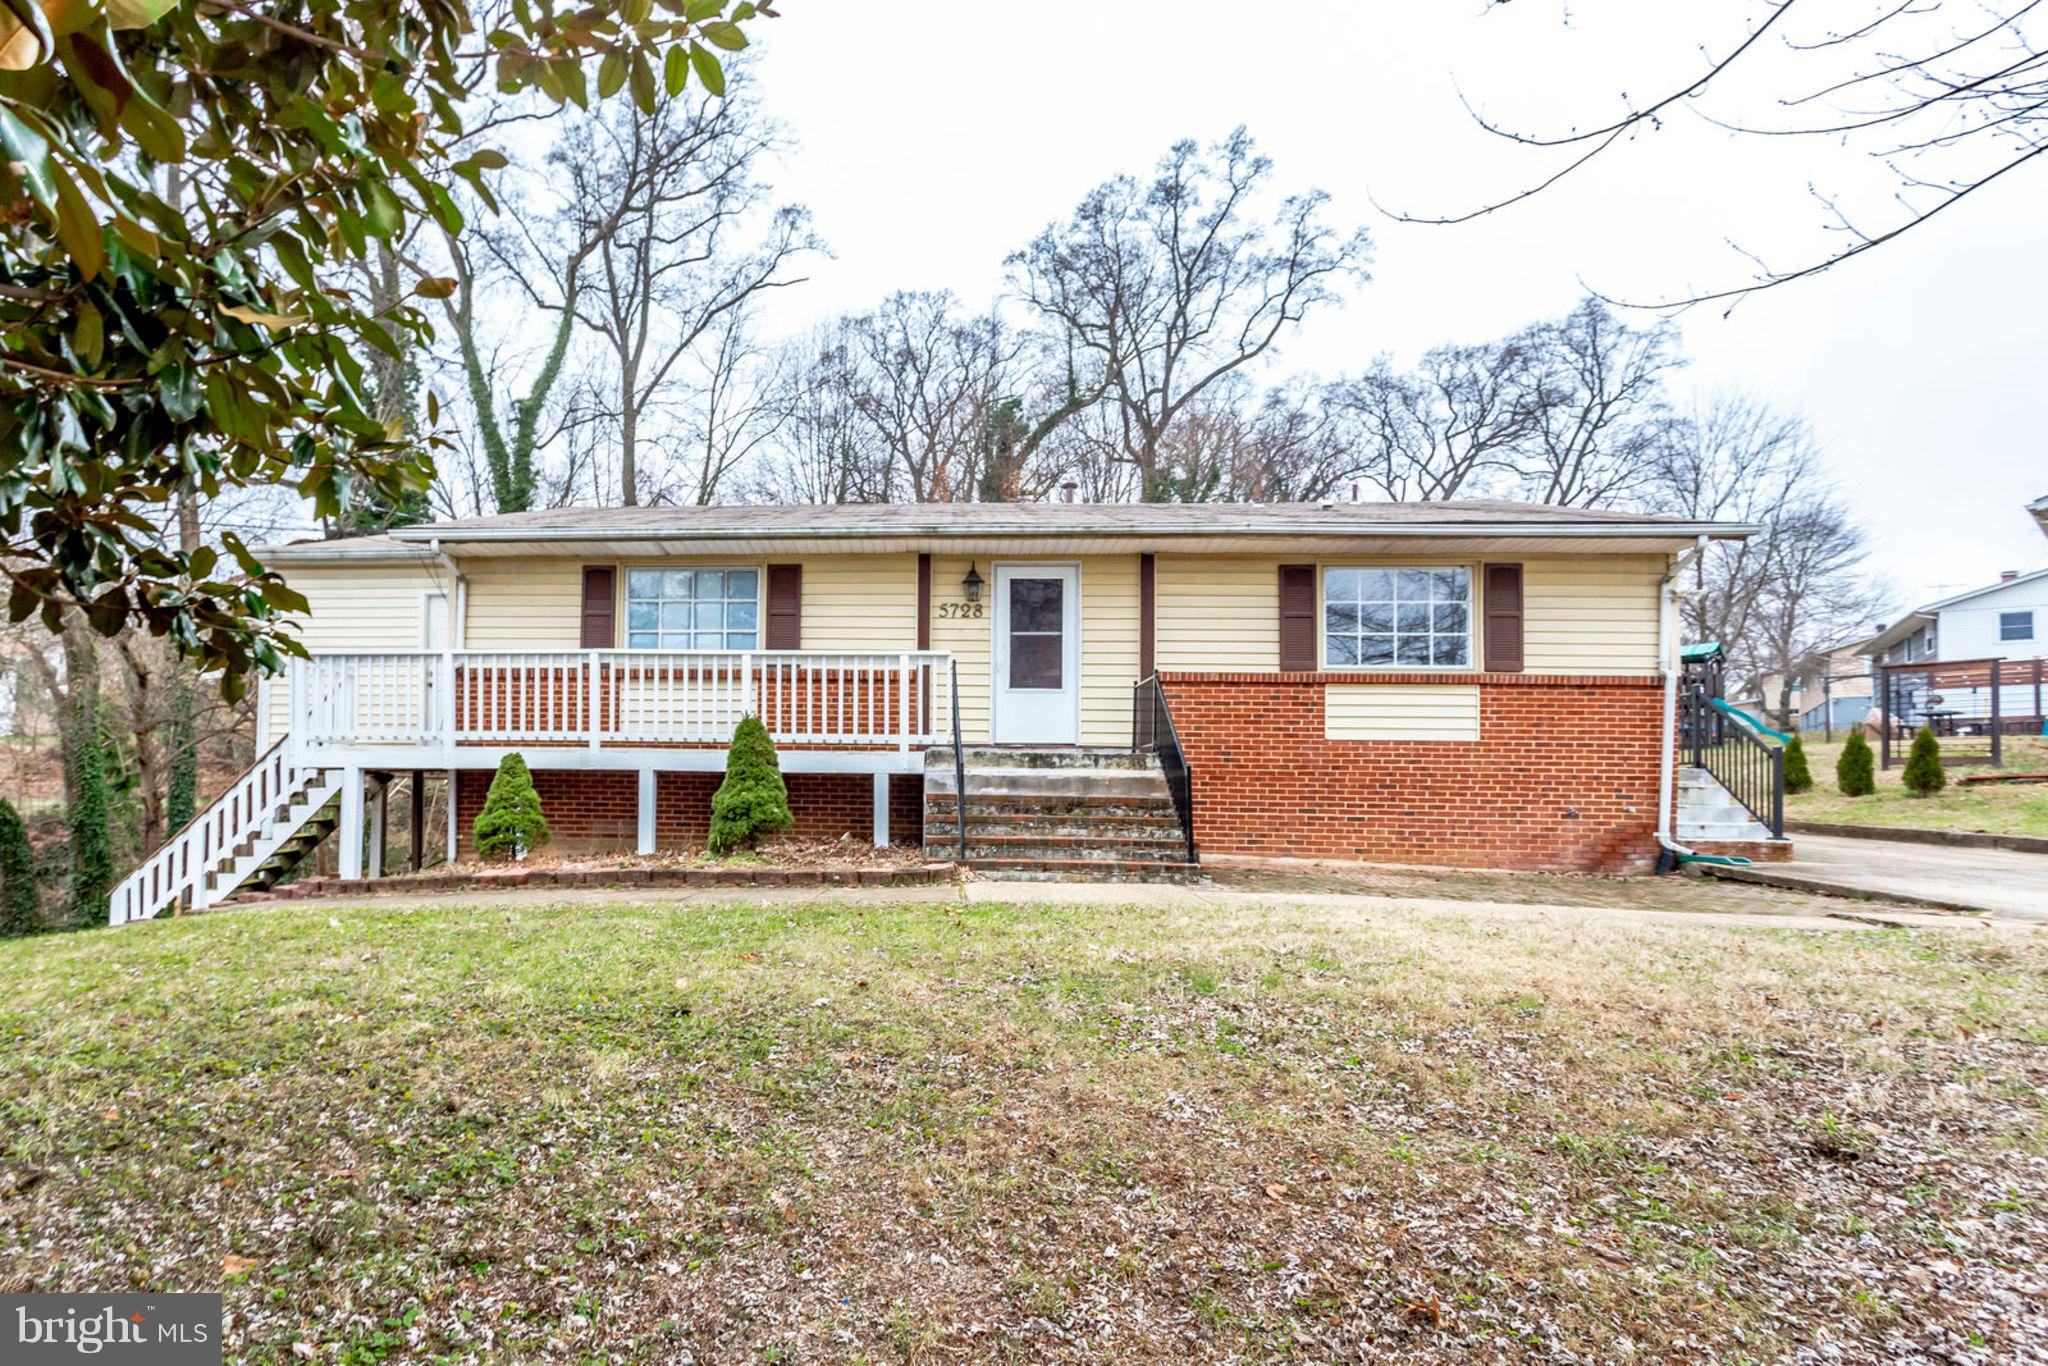 You'll love this endearing Rasied Rambler off a quiet street in a desirable neighborhood located in Alexandria VA! This home has it all; spacious rooms, hardwood floors, walk-out basement and an additional work shed! Is truly a must see and perfectly priced!